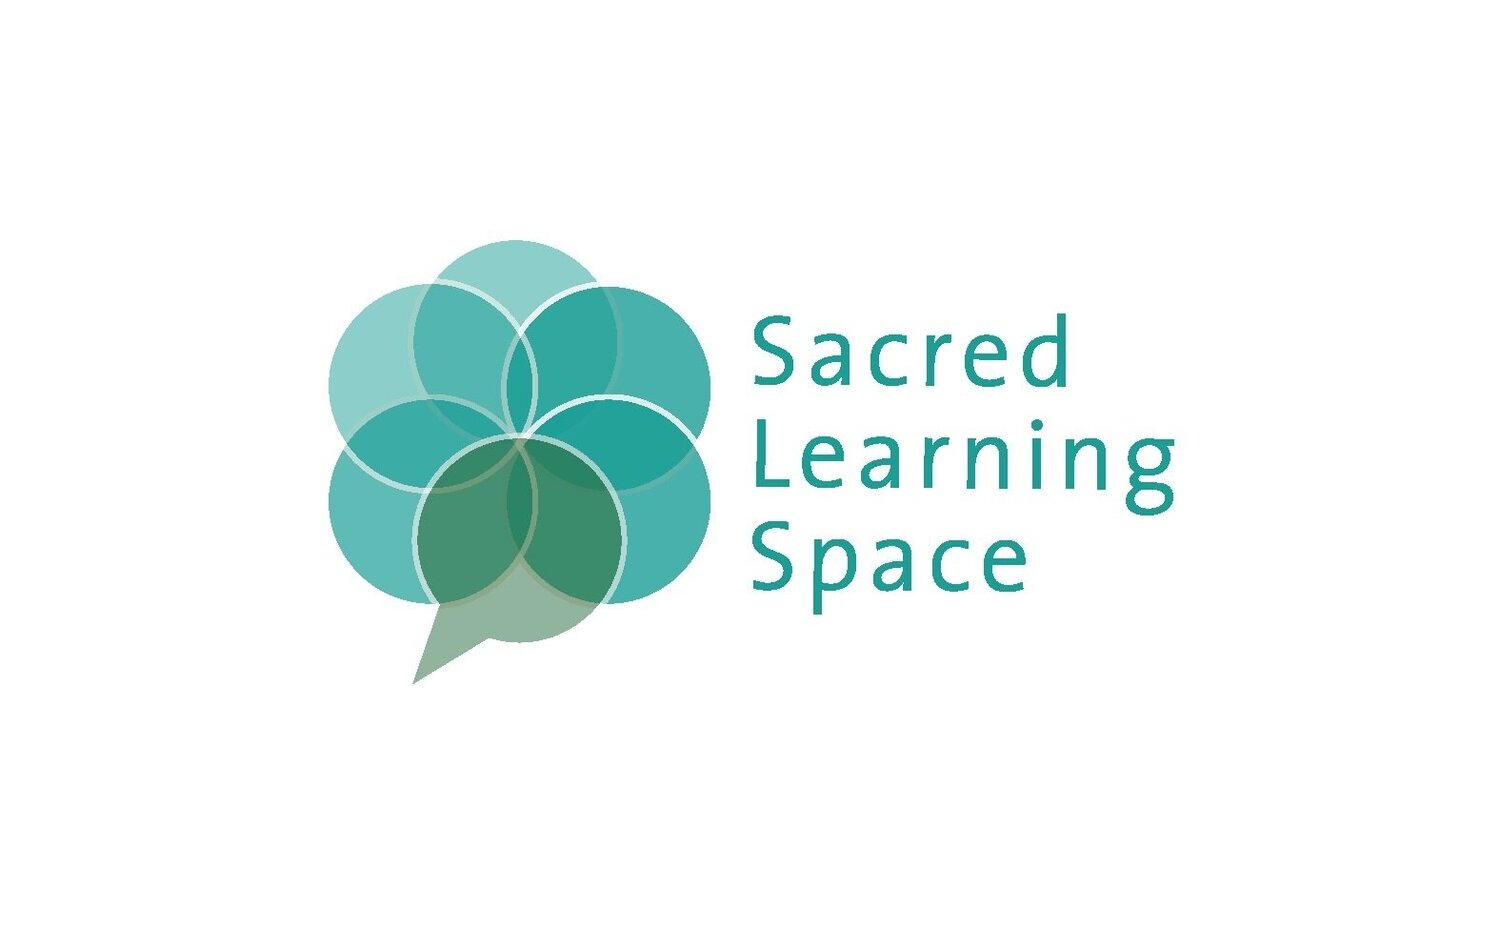 Sacred Learning Space